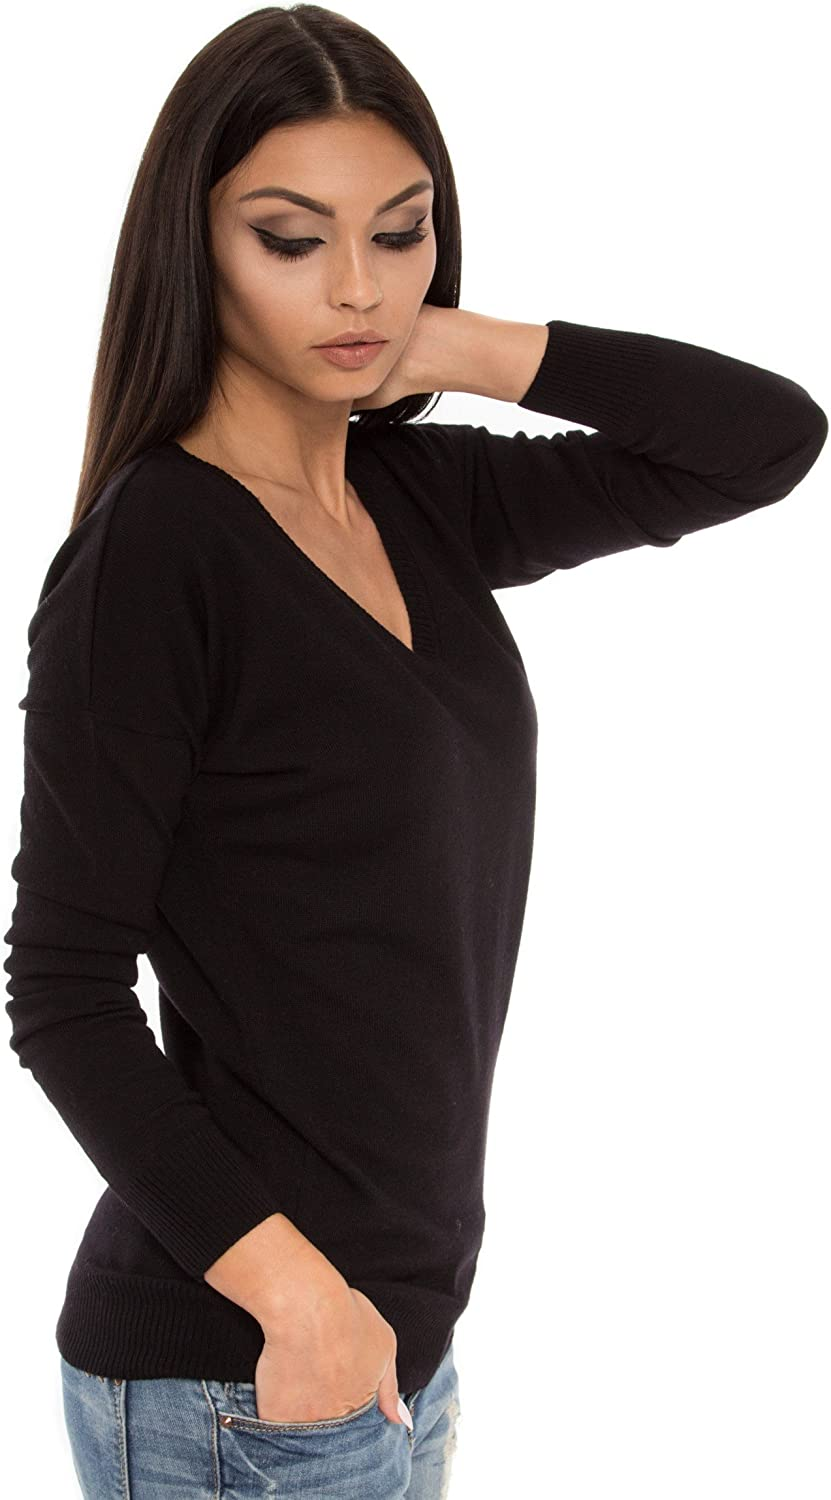 KNITTONS Women Merino Wool V Neck Sweater Regular Fit